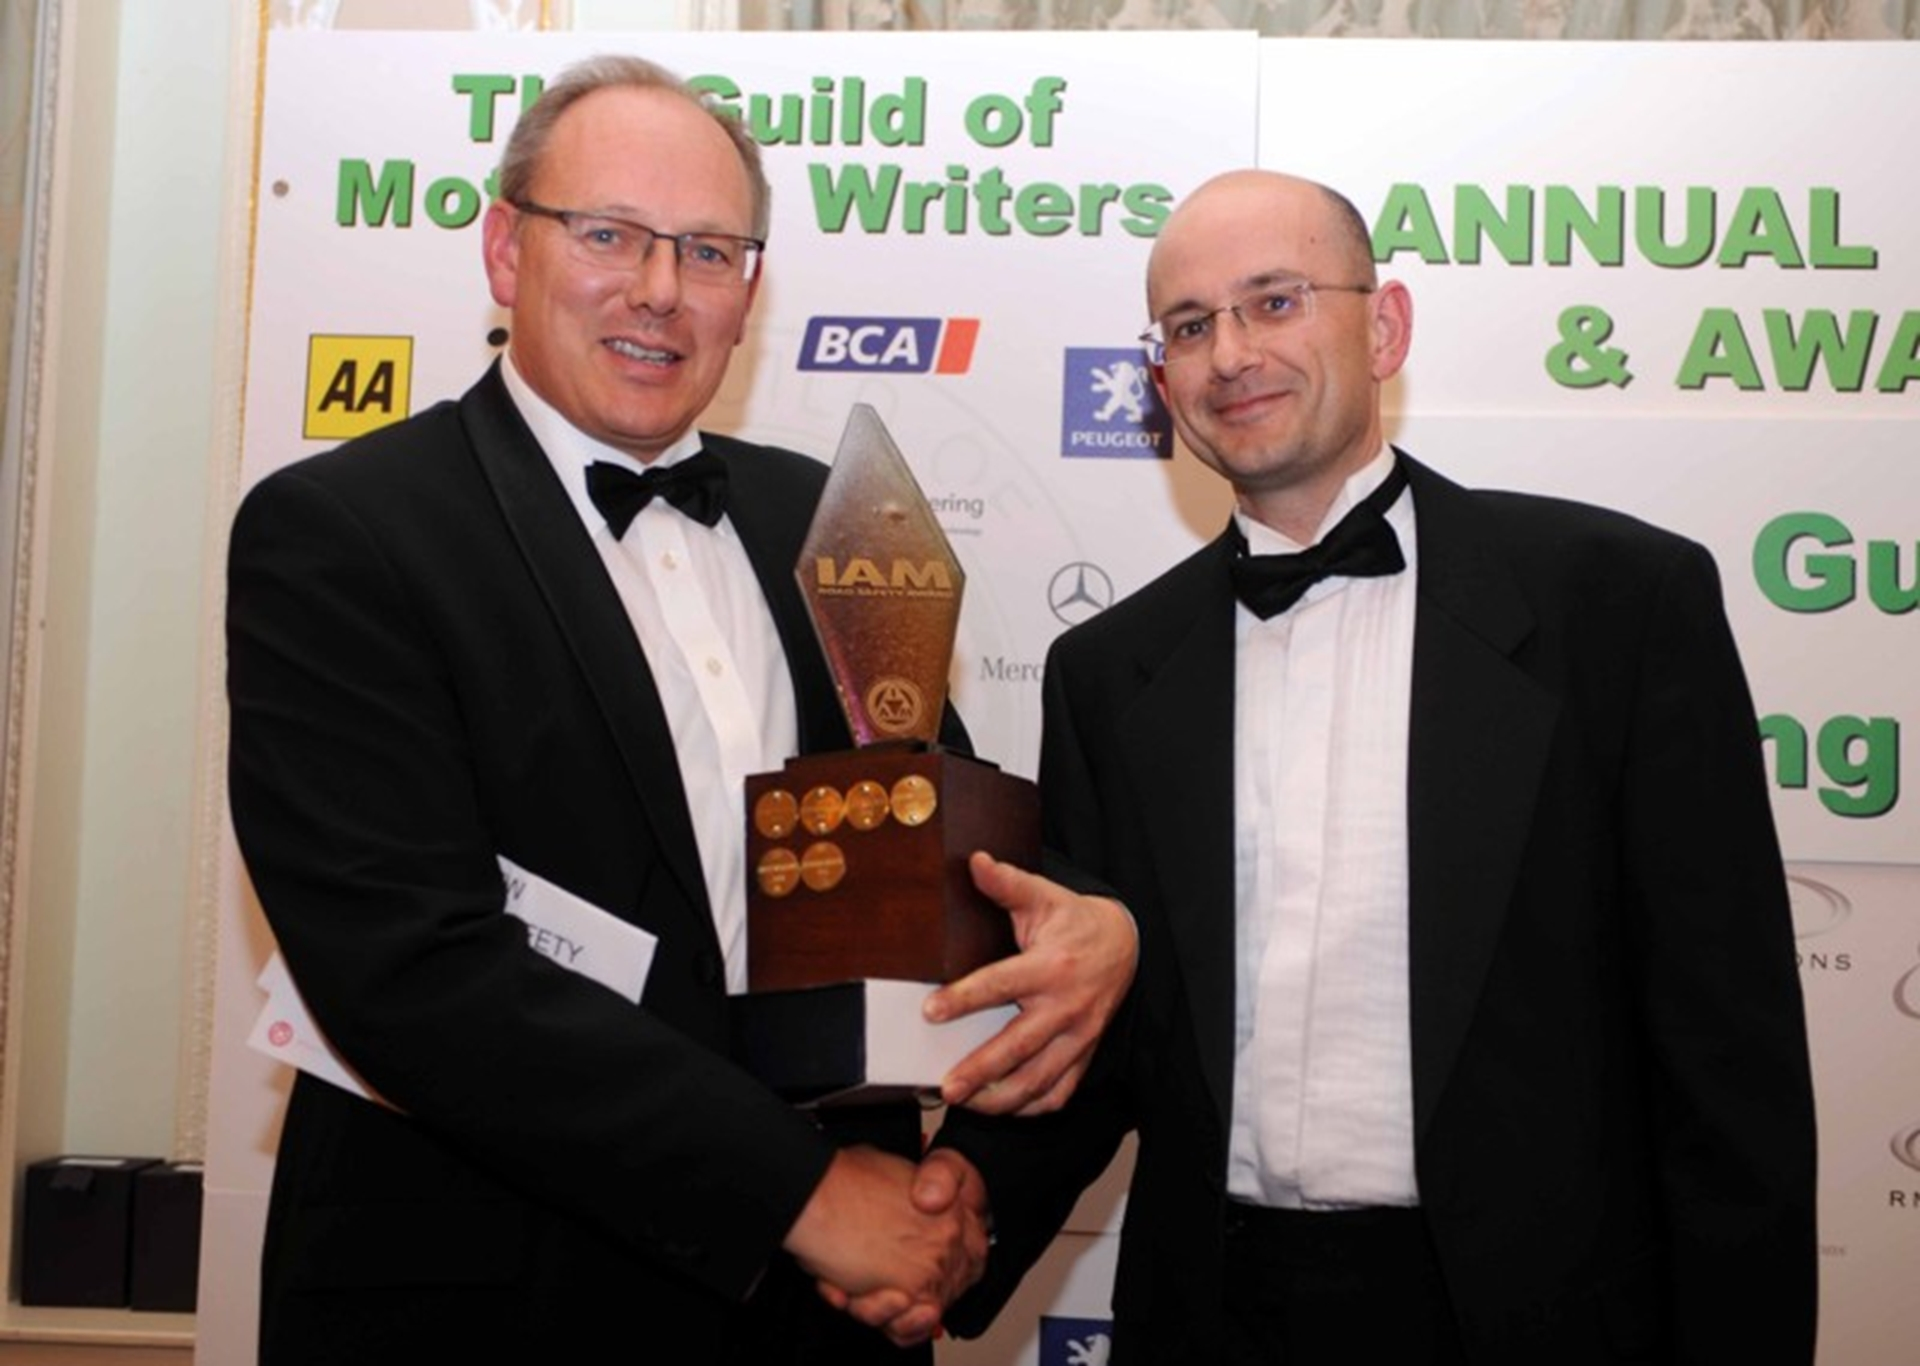 The 2011 Guild Of Motoring Writers Awards